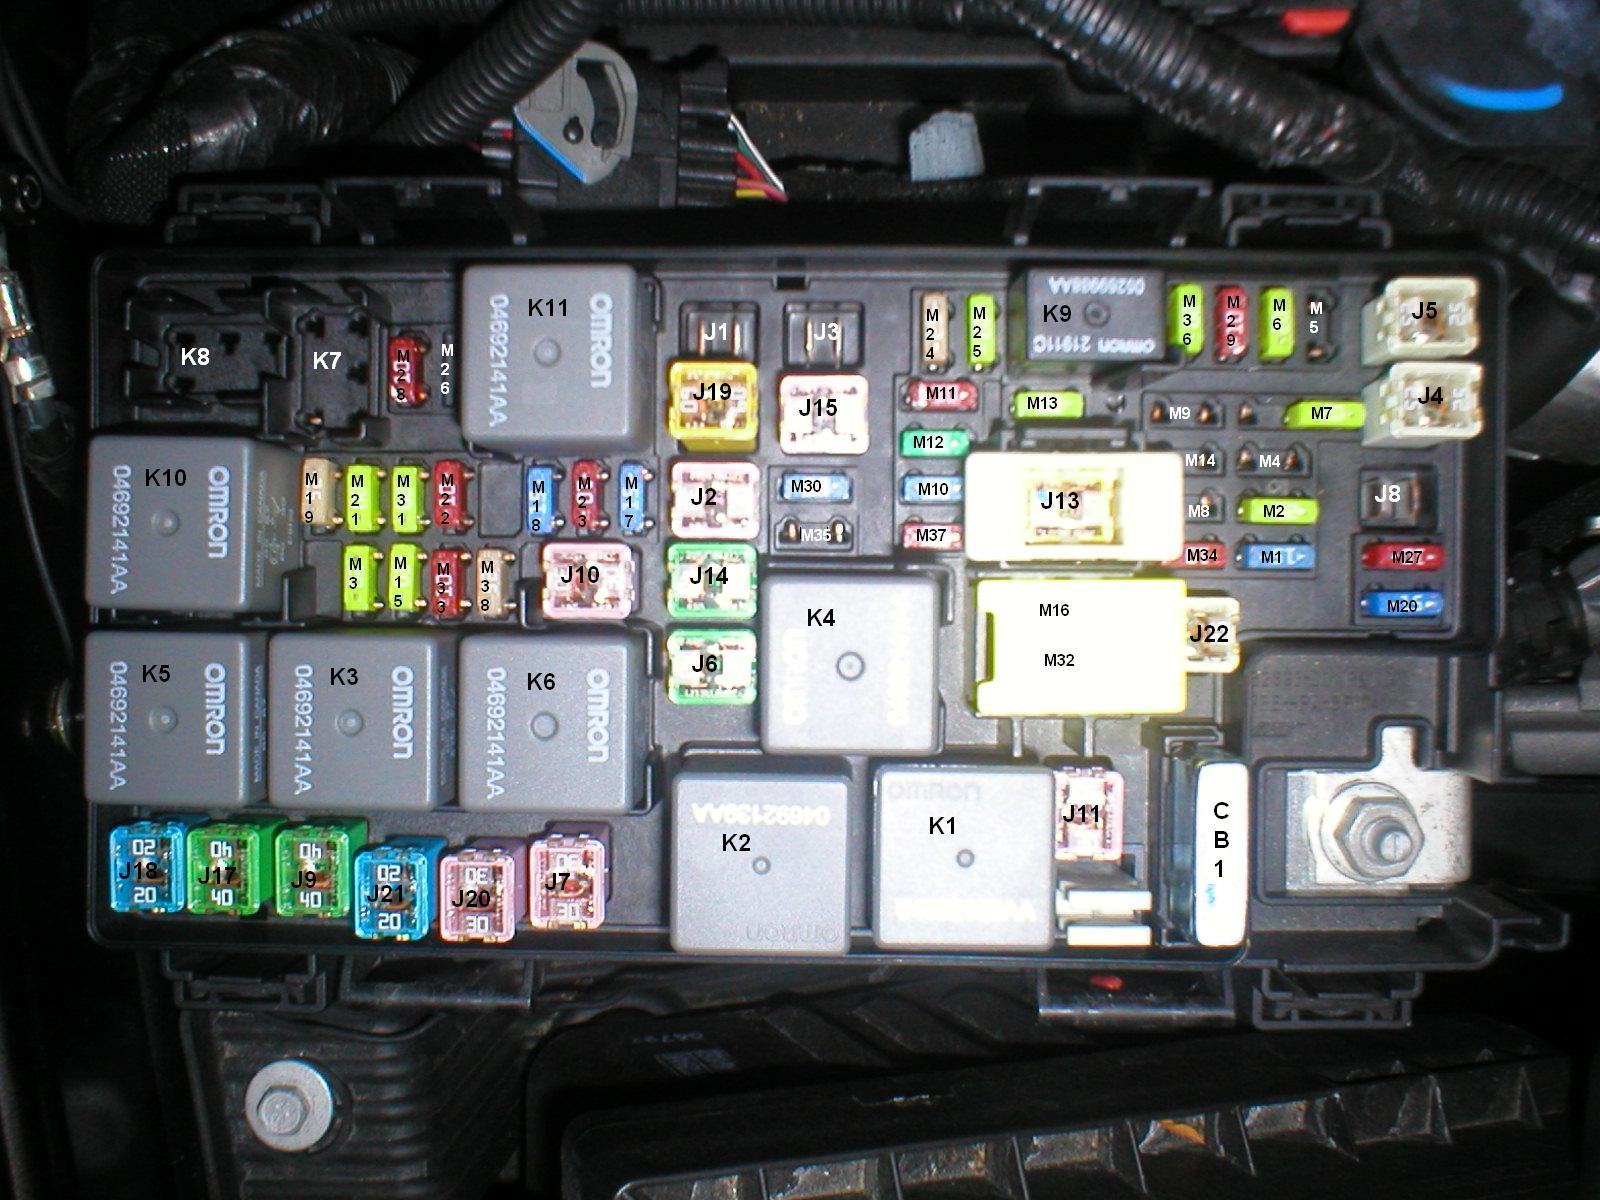 hight resolution of jeep jk fuse box map layout diagram jeepforum com 2013 nissan sentra fuse box diagram jk fuse box diagram